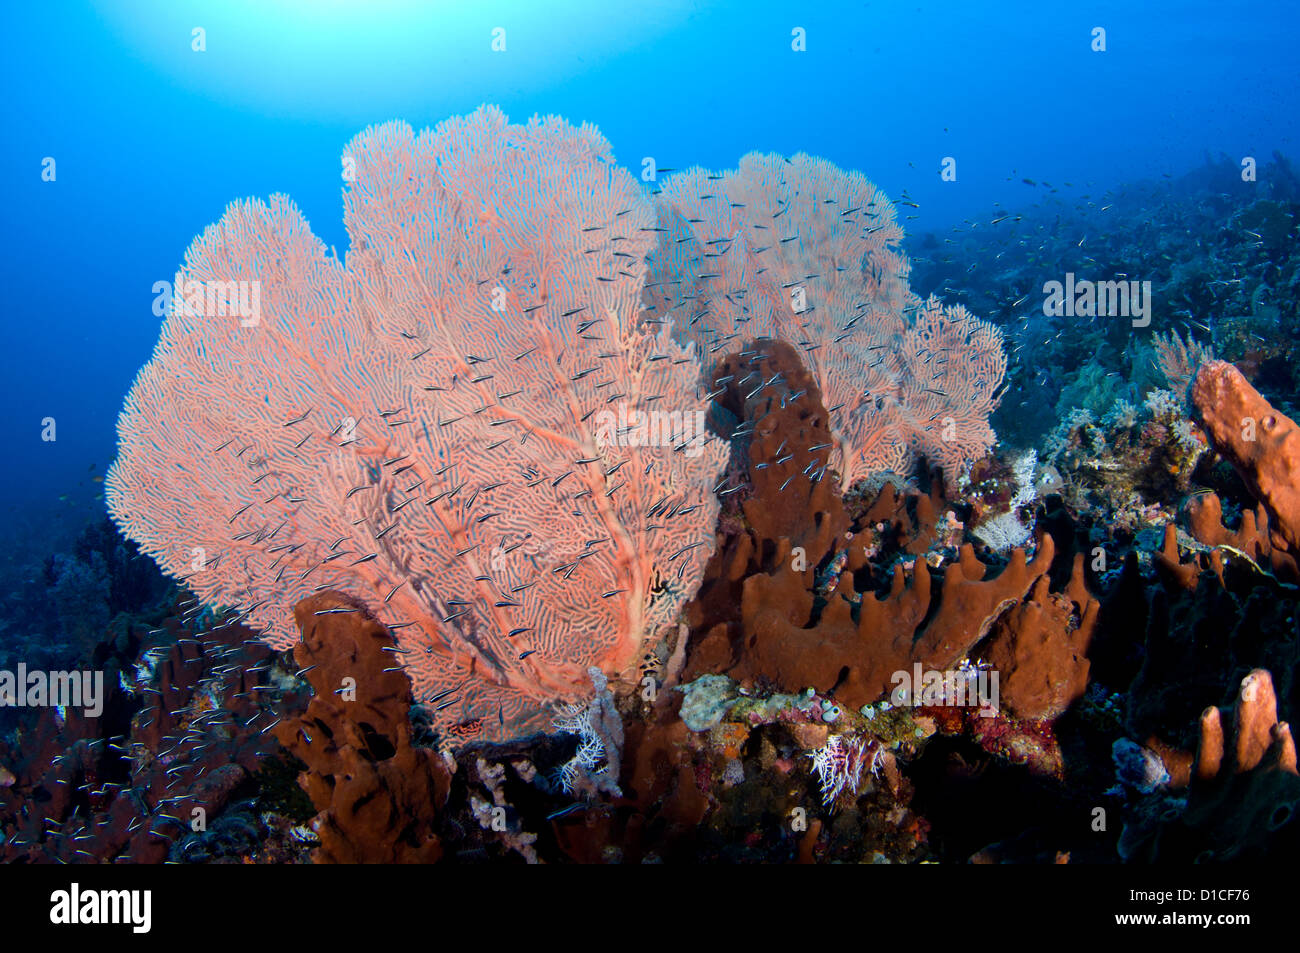 Schooling juvenile convict fish, seafans, and sponge, Spice Islands, Maluku Region, Halmahera, Indonesia, Pacific Stock Photo